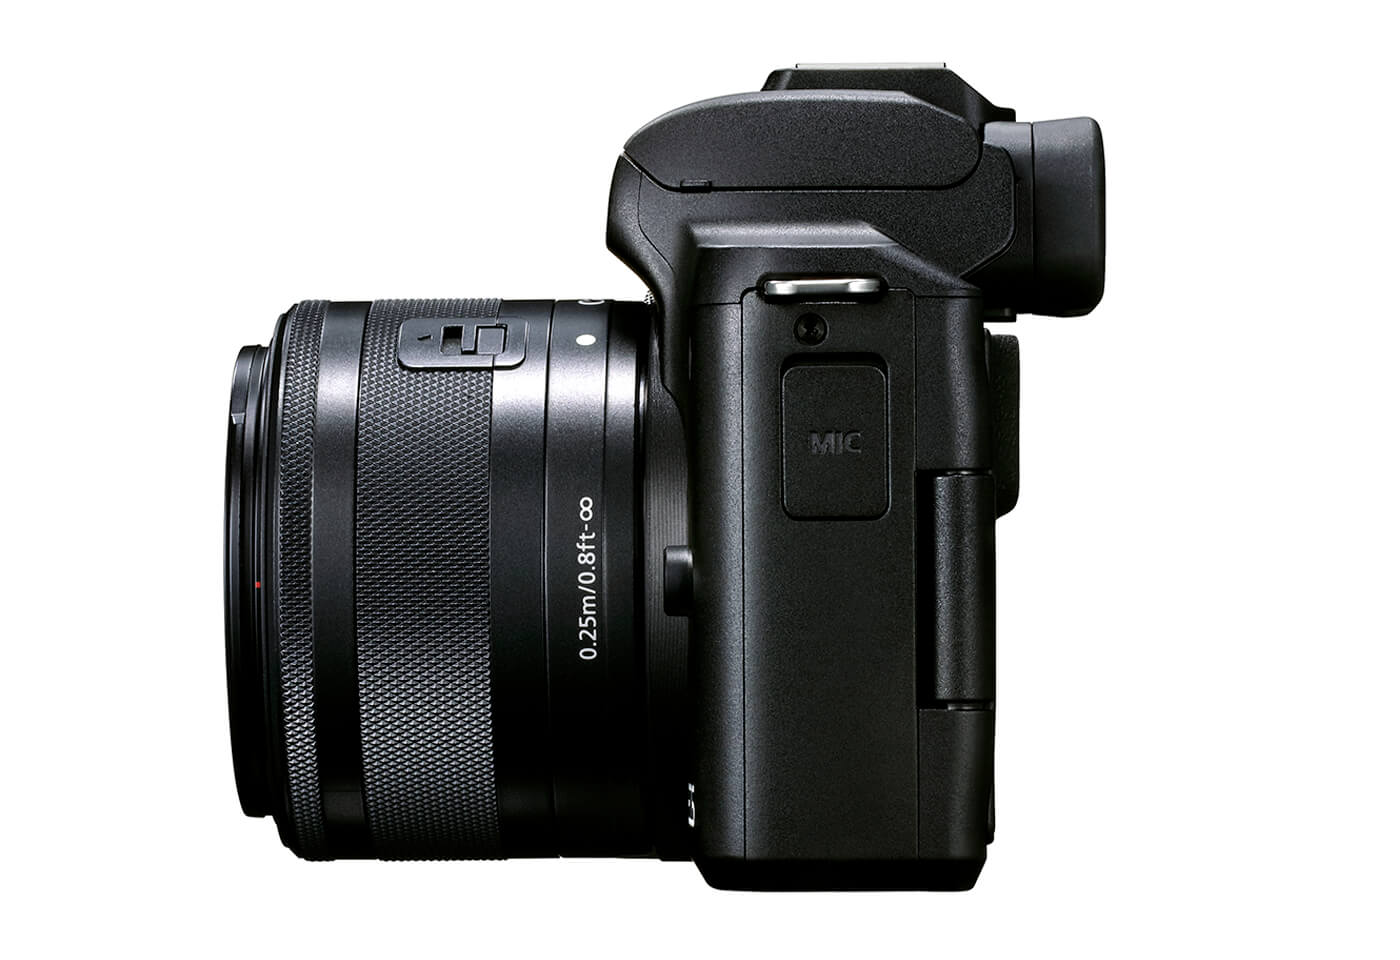 Side profile image of the EOS M50 Mark II mirrorless camera